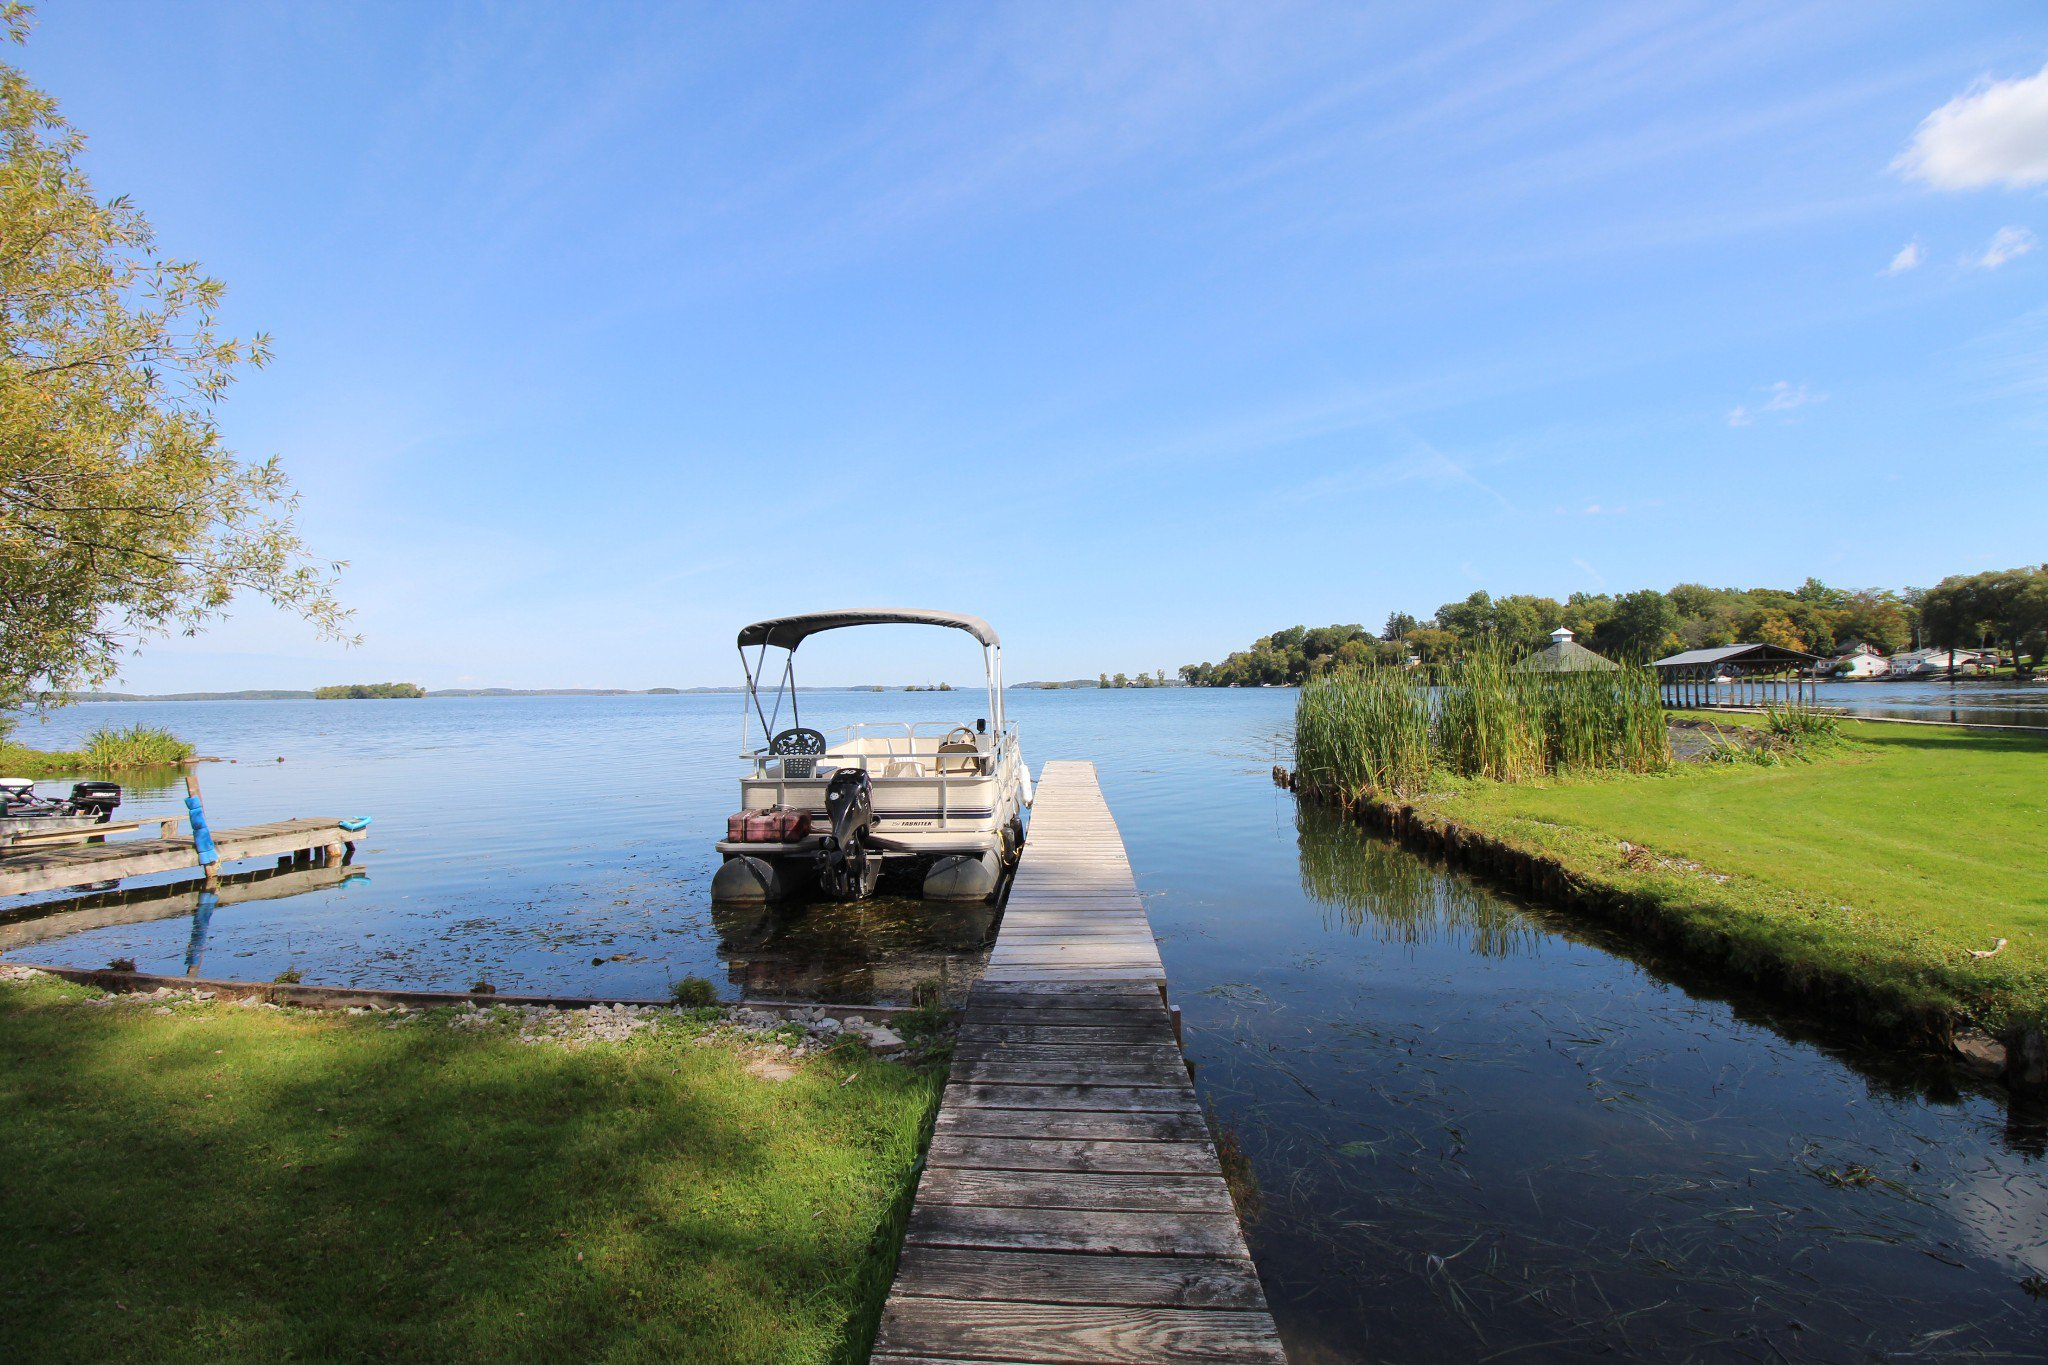 Photo 11: Photos: 6010 Rice Lake Scenic Drive in Harwood: Other for sale : MLS®# 223405